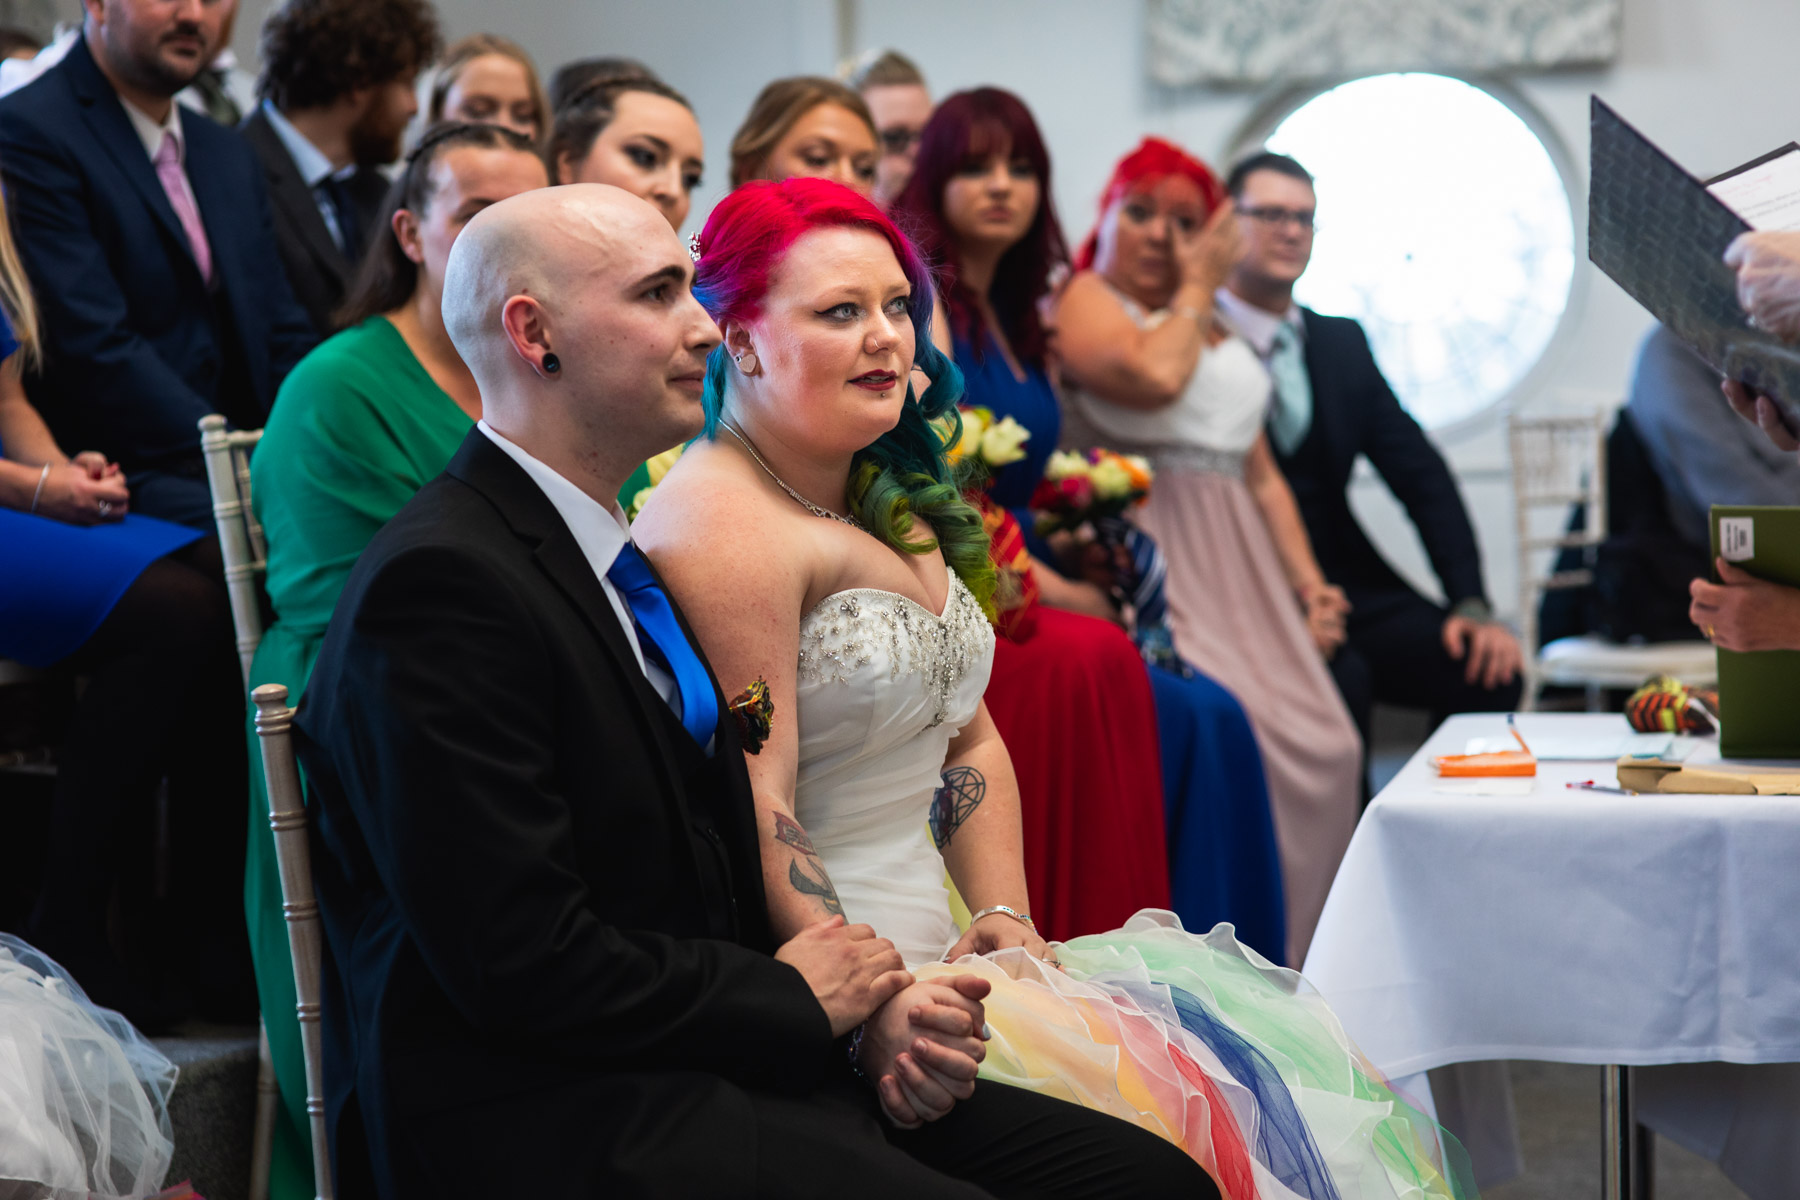 Colourful and intimate moment of wedding ceremony